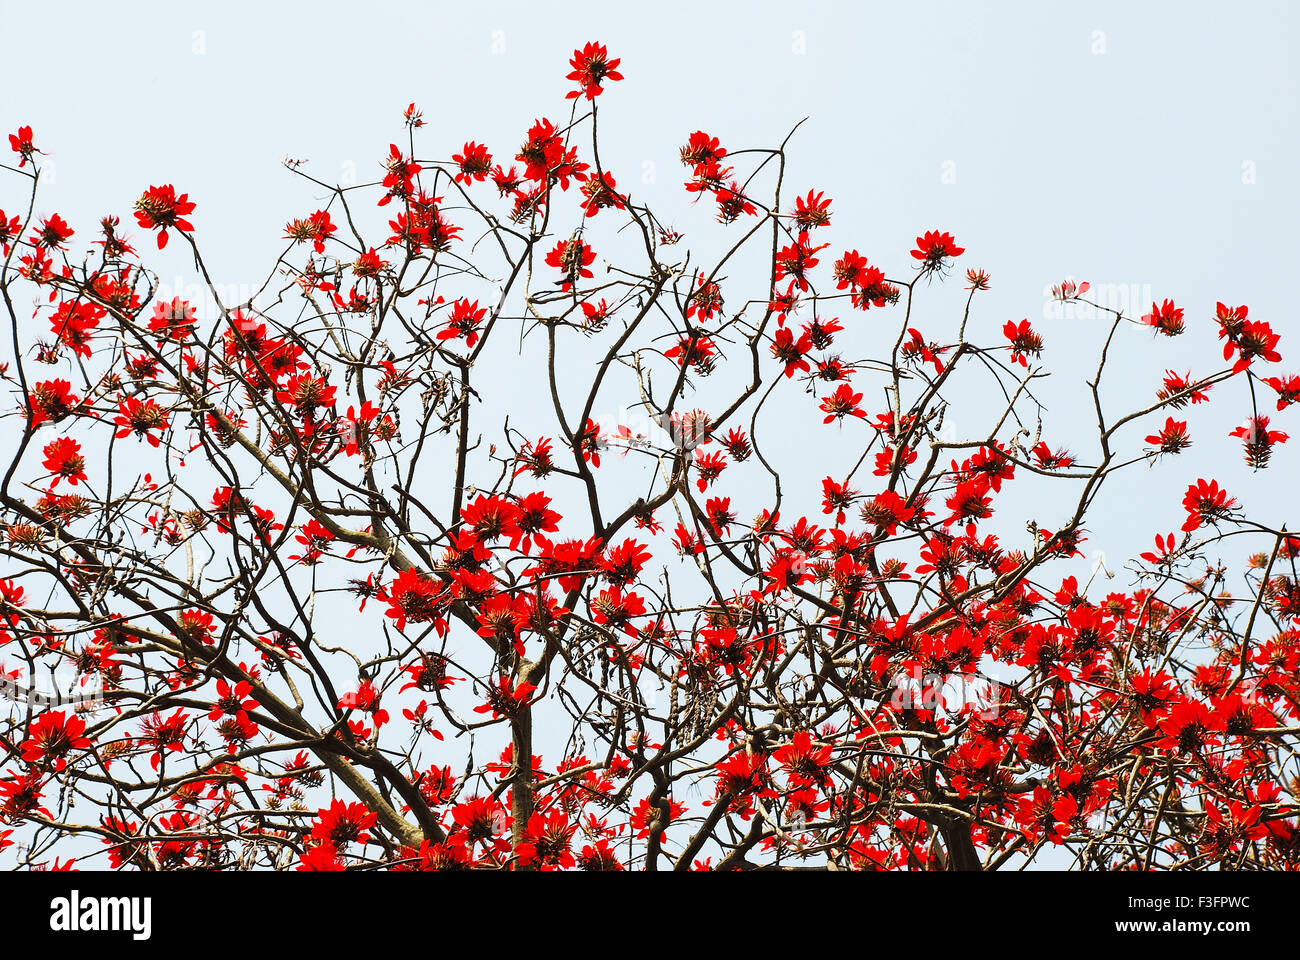 Red Flowers Blooming In Spring Season India Stock Photo 88243048